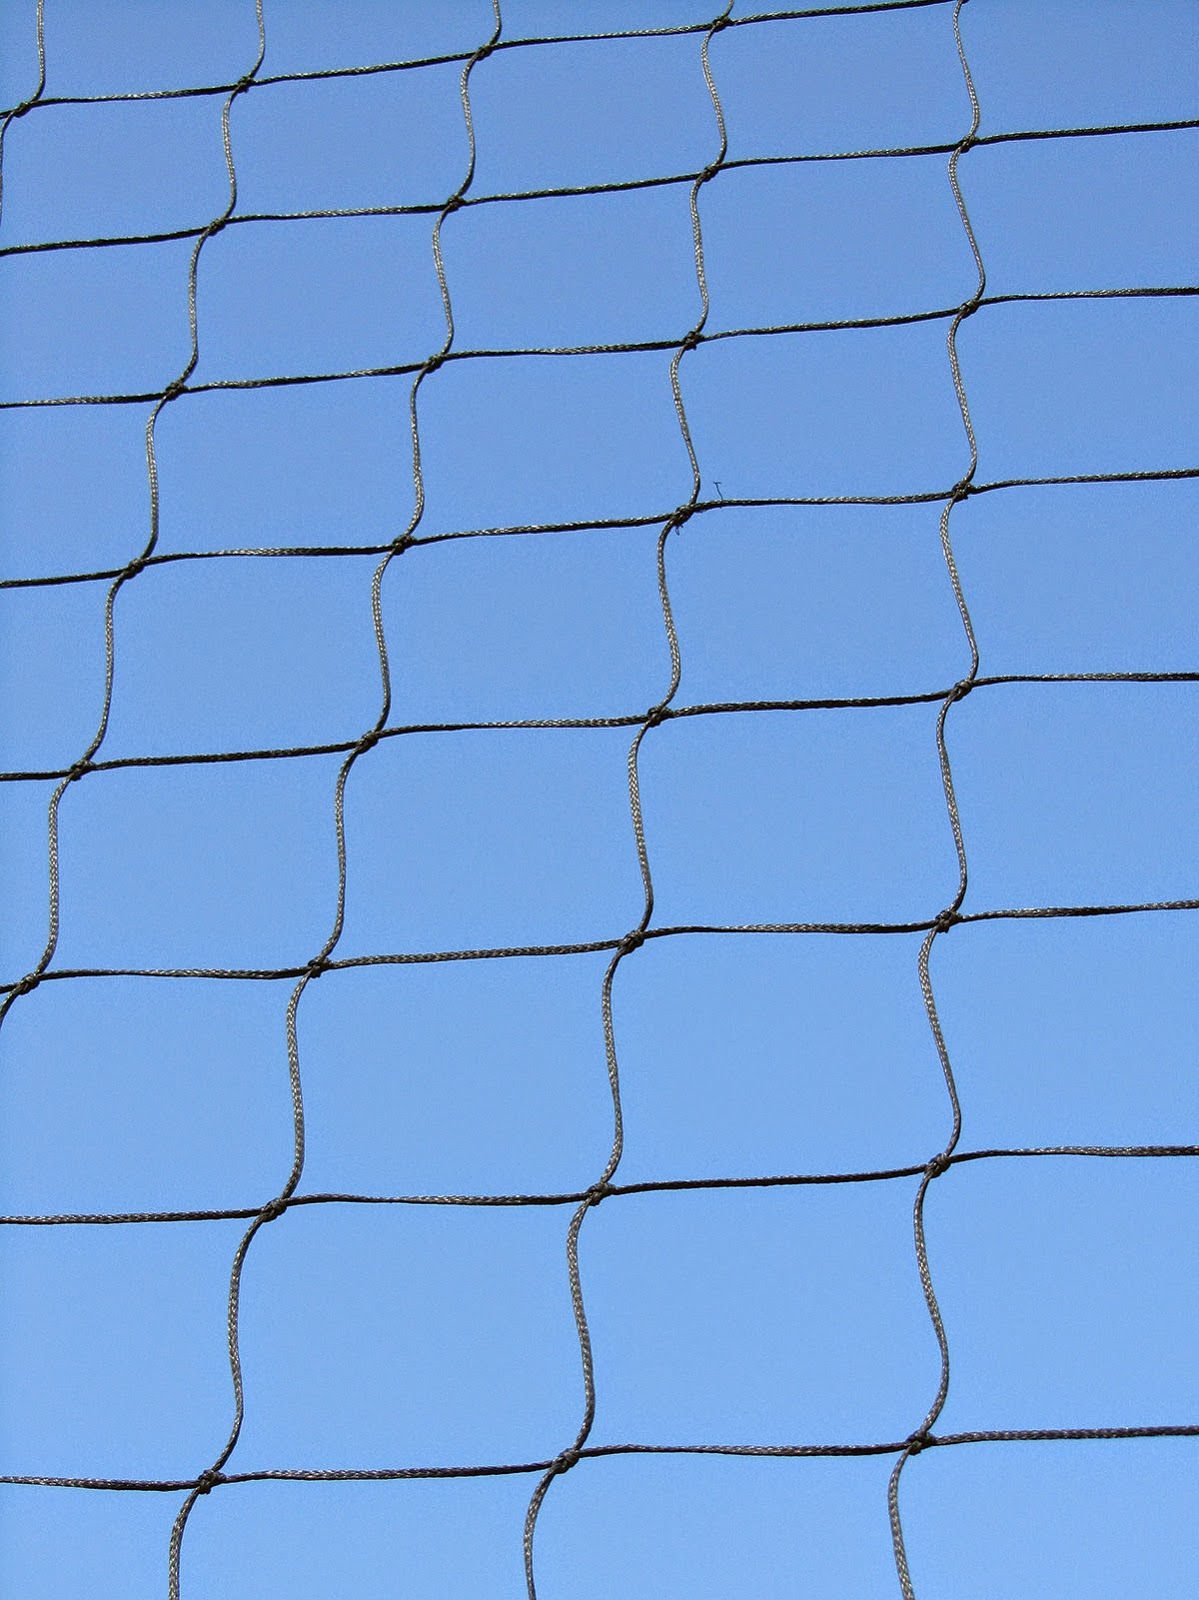 pattern of a soccer net against a blue sky